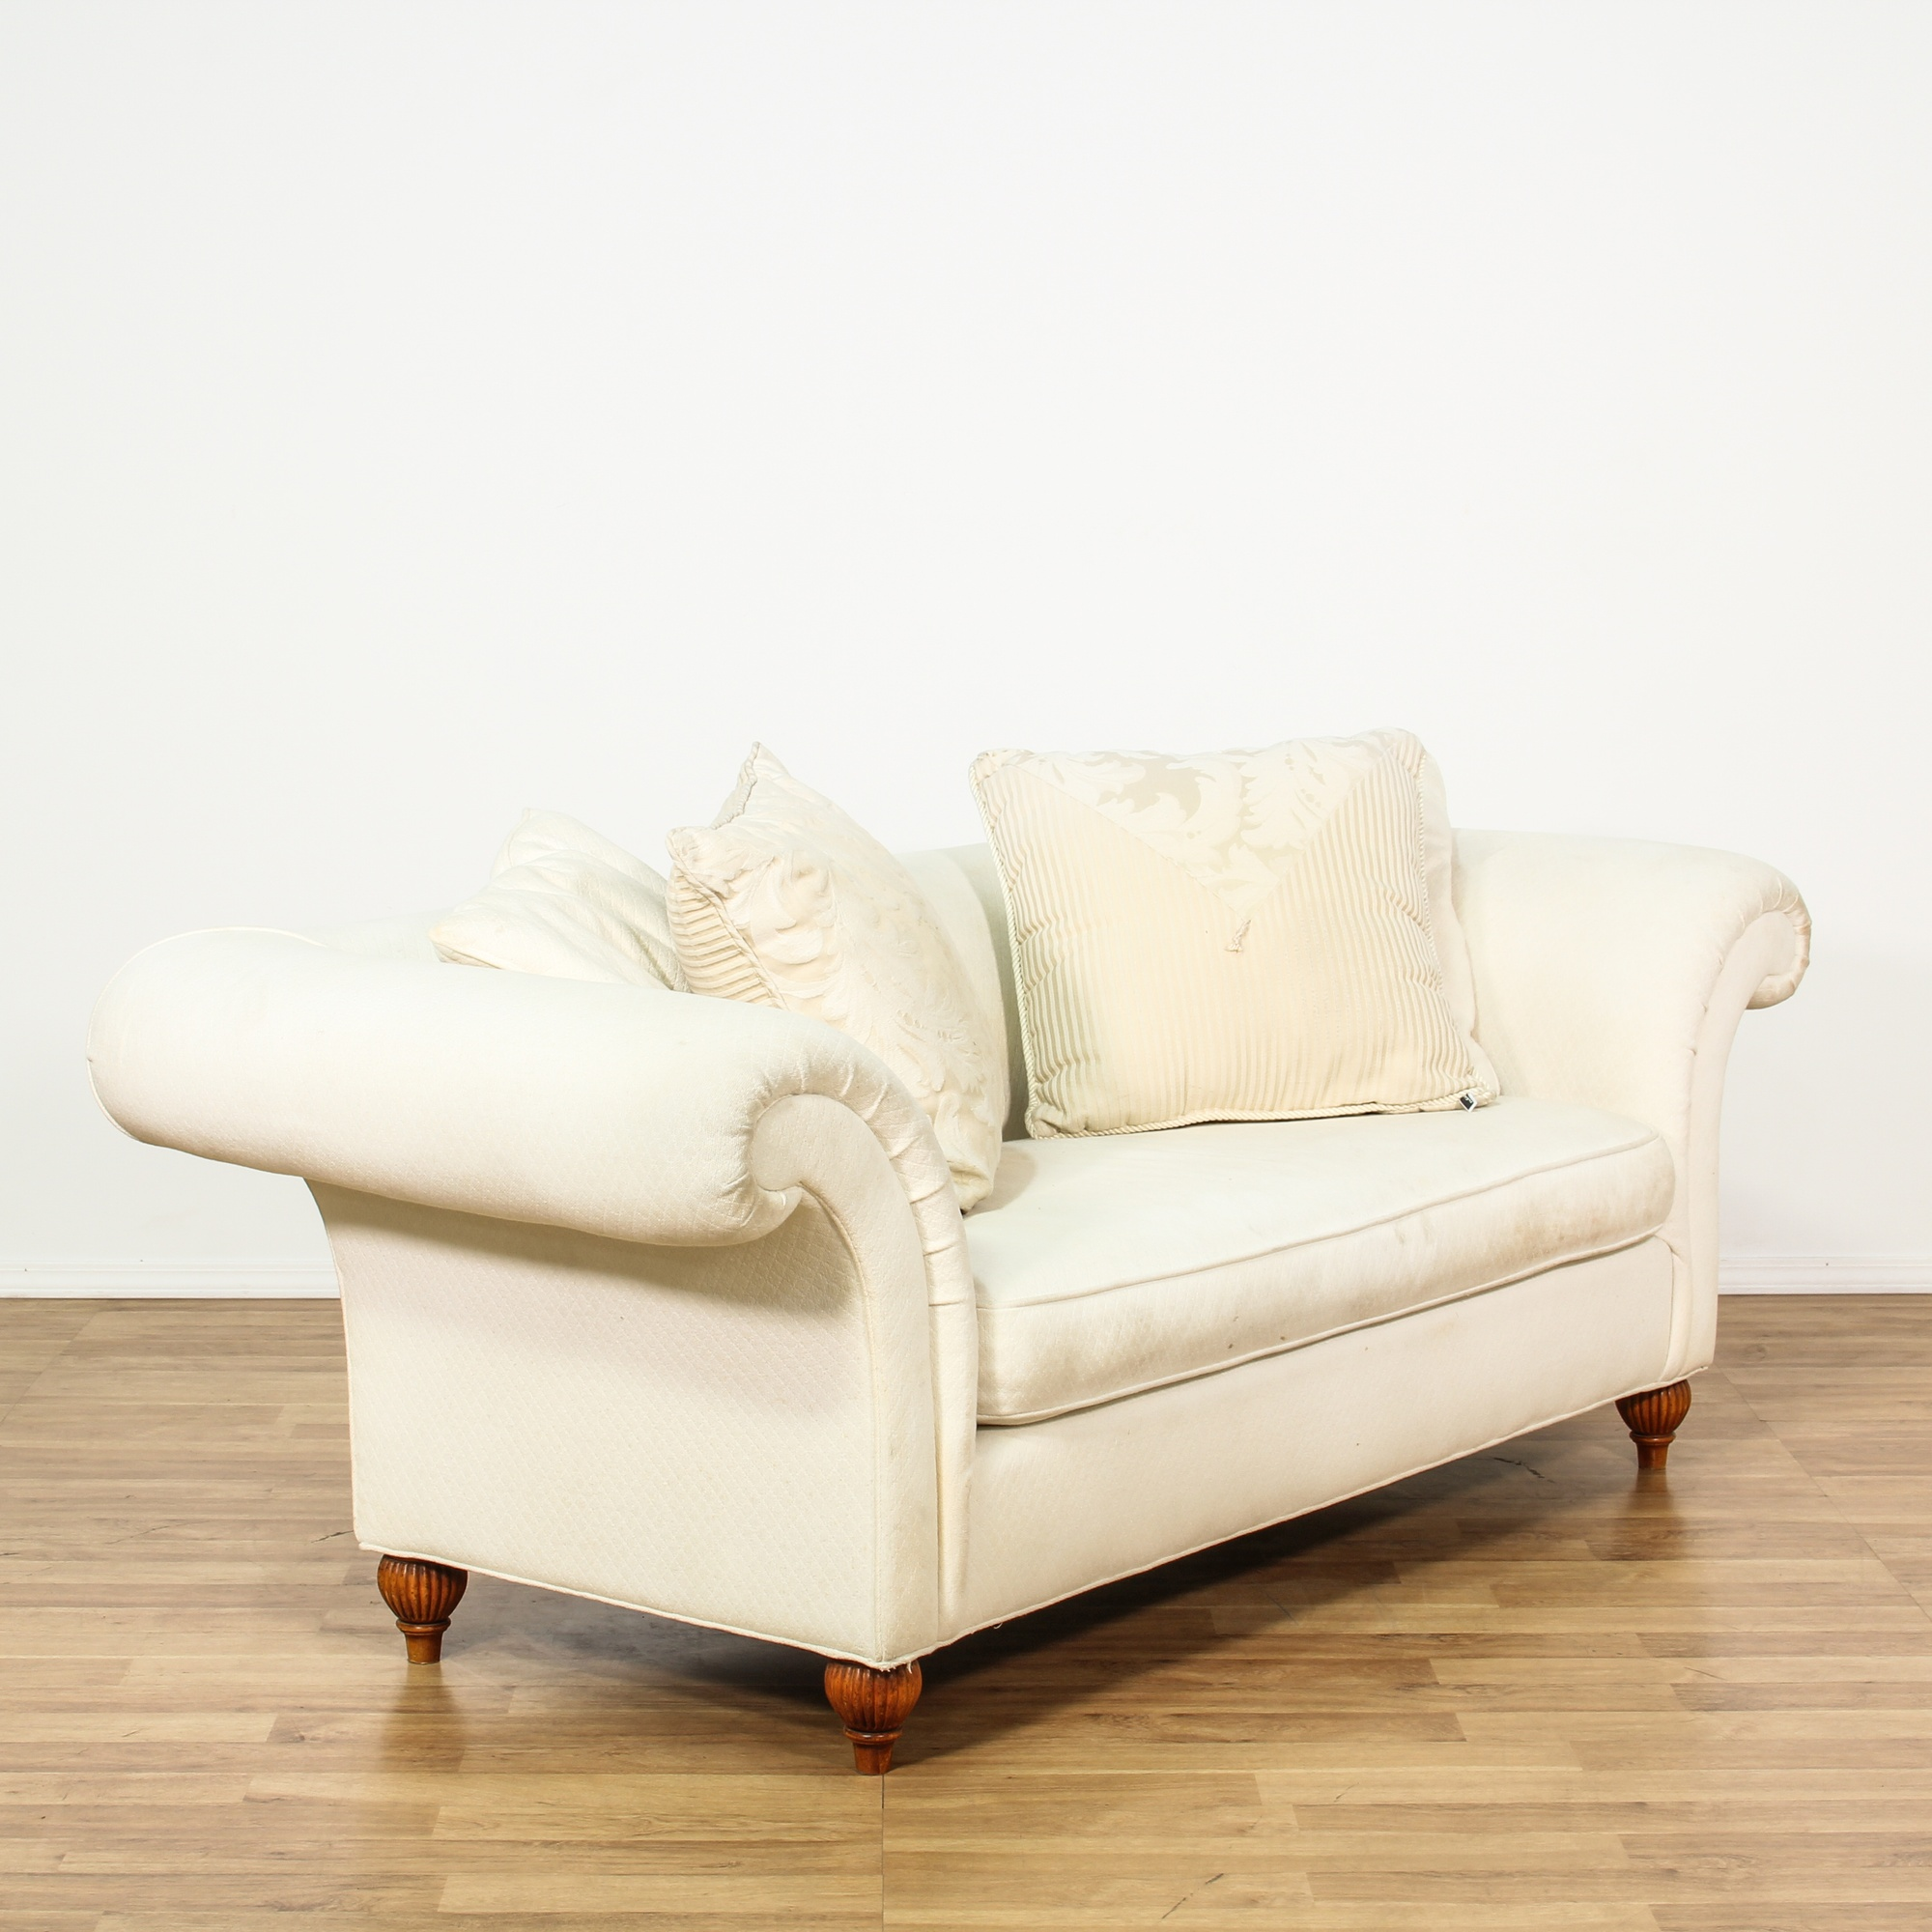 Contemporary Ivory Upholstered Loveseat Sofa 2 Loveseat Vintage Furniture San Diego Los Angeles